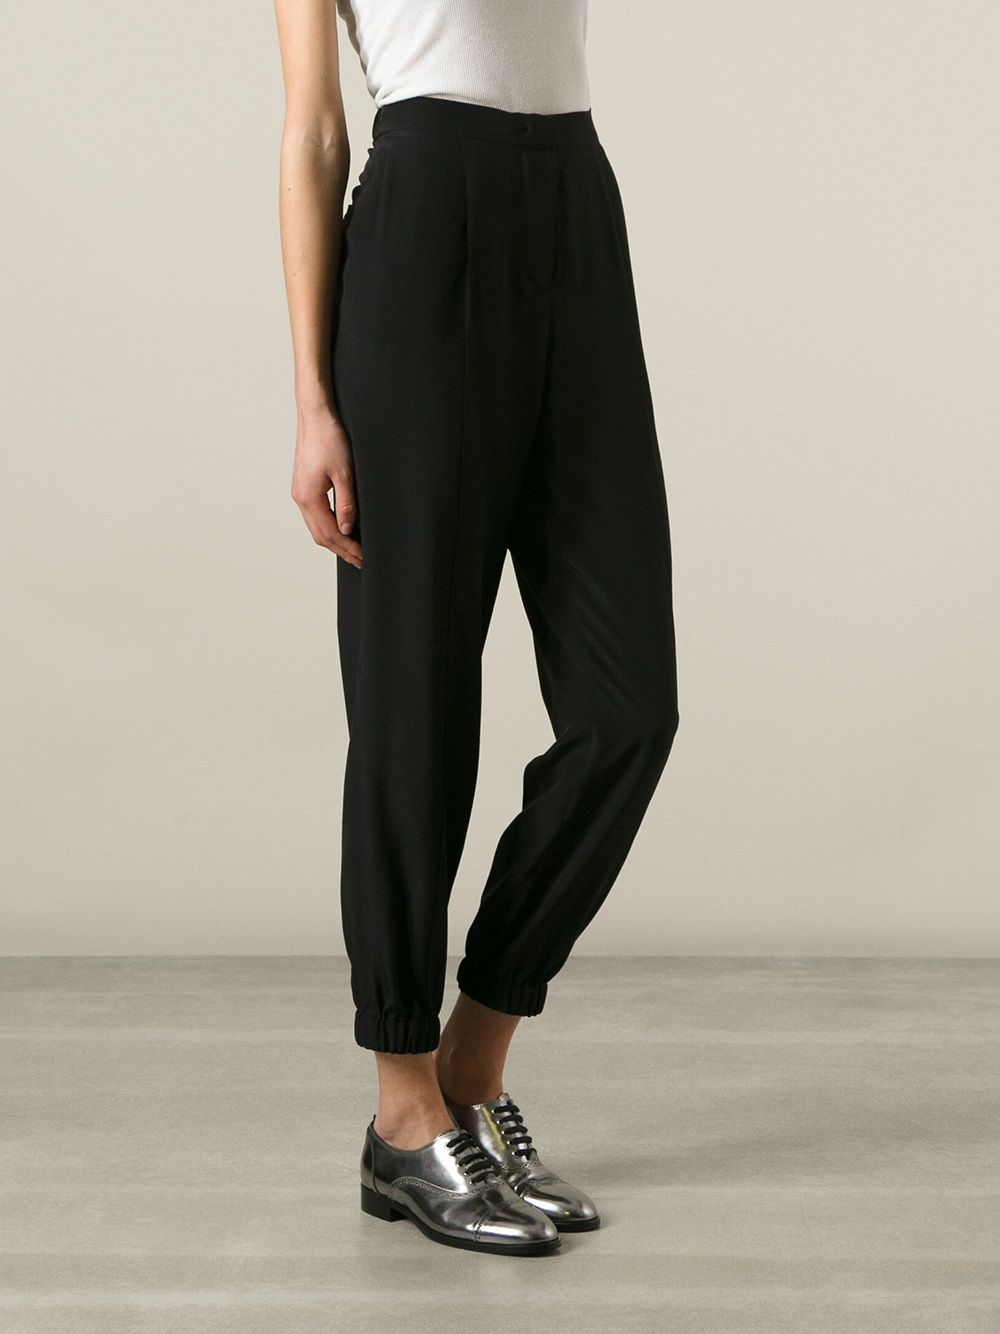 high waisted pants - Black Sonia Rykiel cnN6zTrRfv